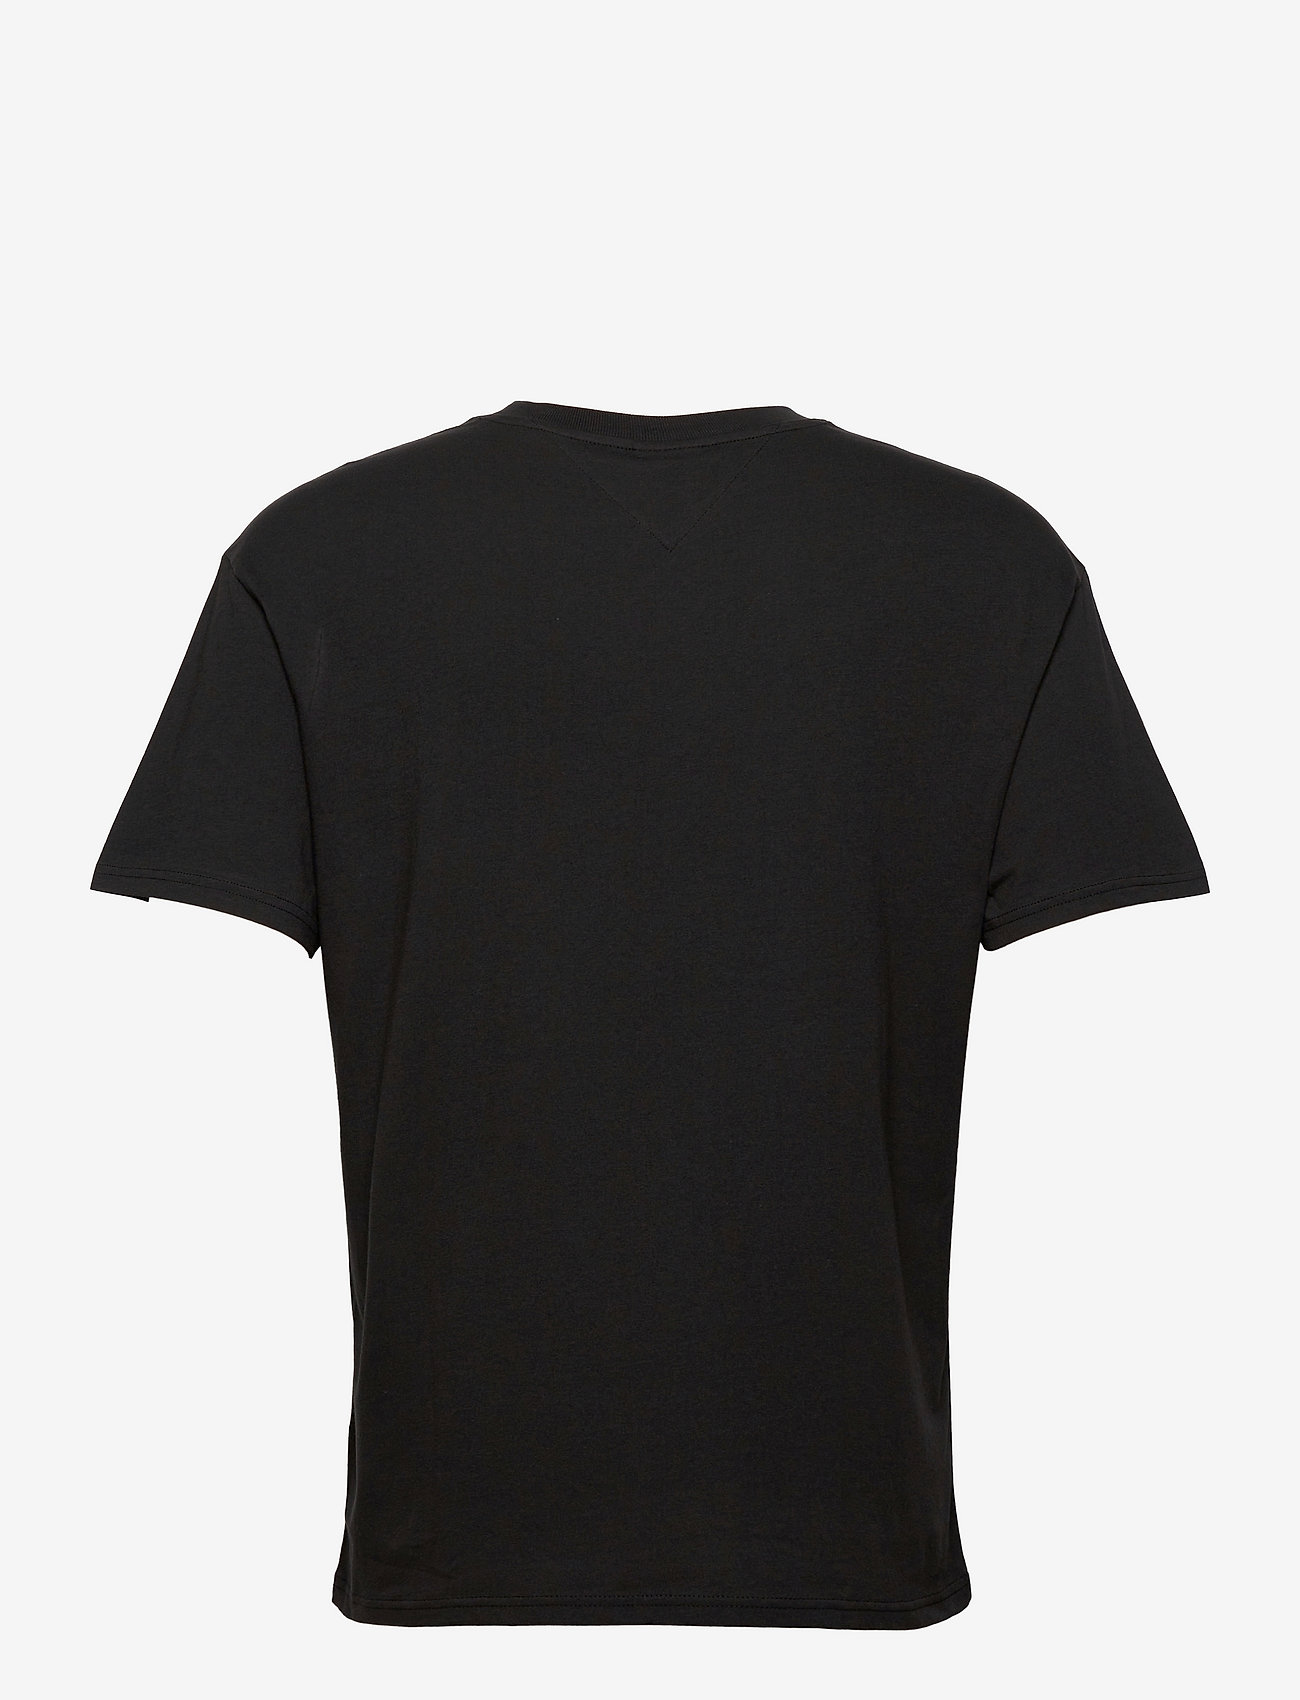 Tommy Jeans - TJM FADED COLOR GRAPHIC TEE - kortärmade t-shirts - black - 1